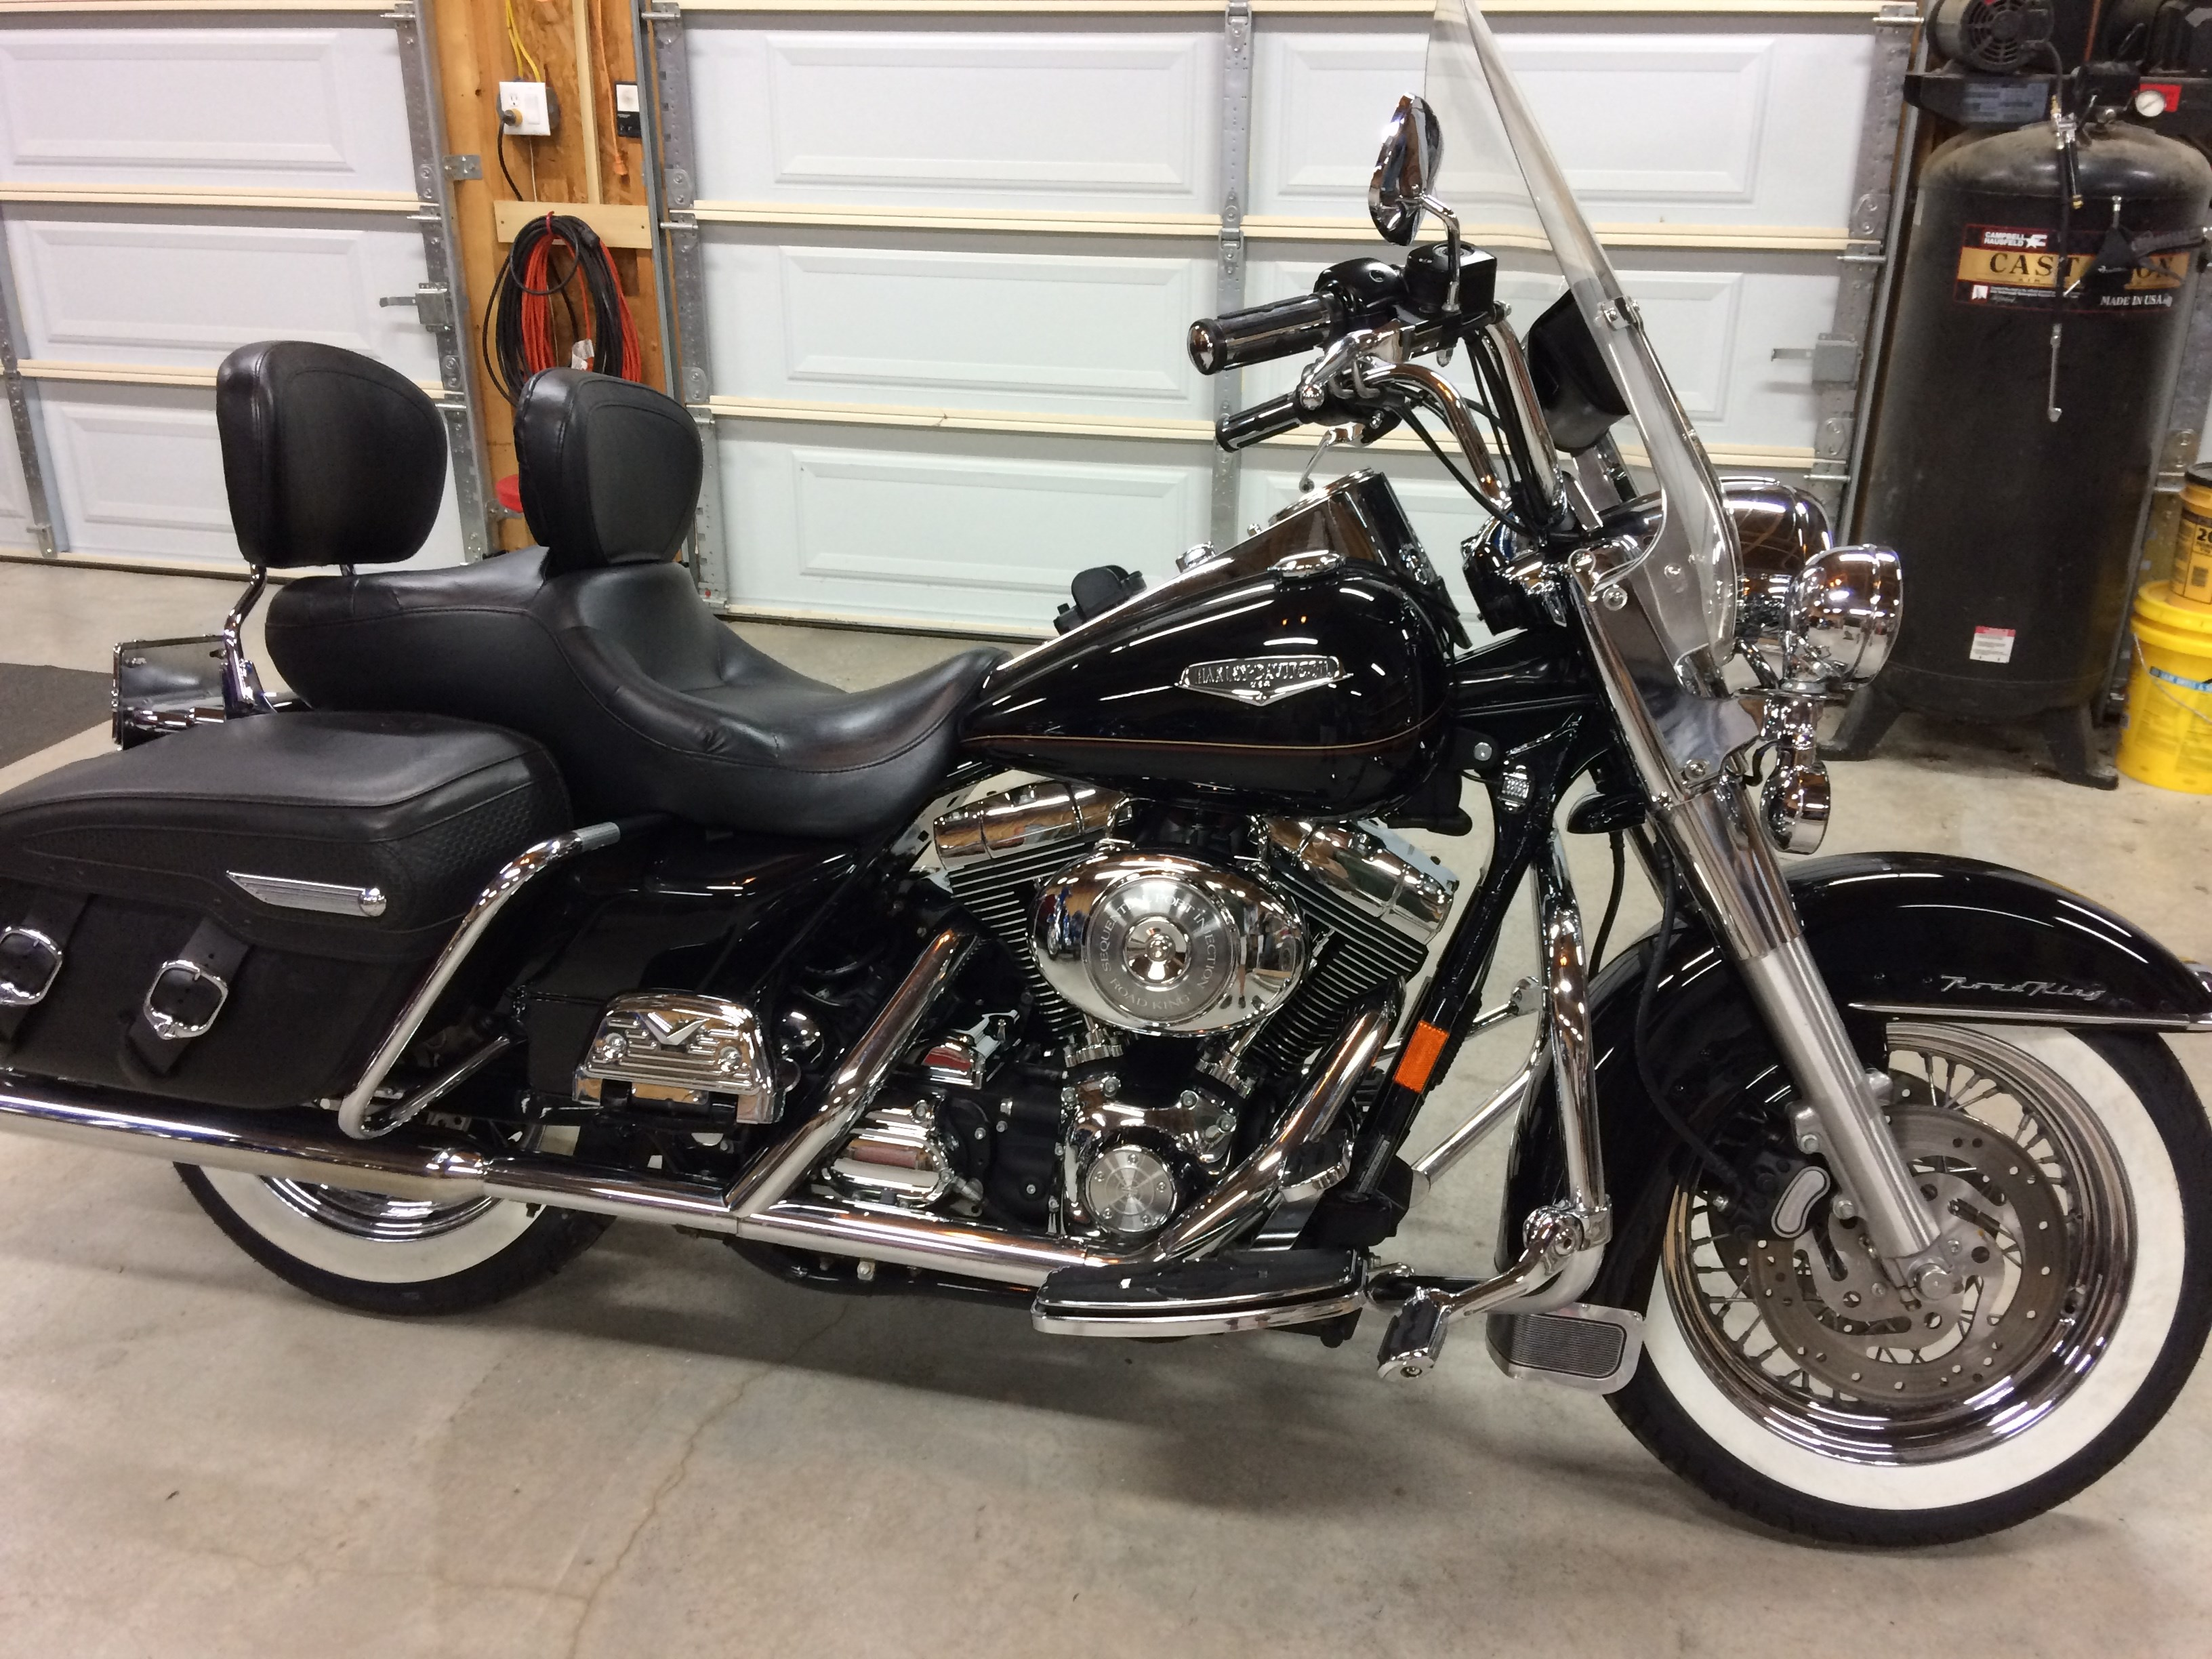 Harley Cvo For Sale San Diego >> All New & Used Harley-Davidson® Touring Road King Classic® For Sale (289 Bikes, Page 1 ...